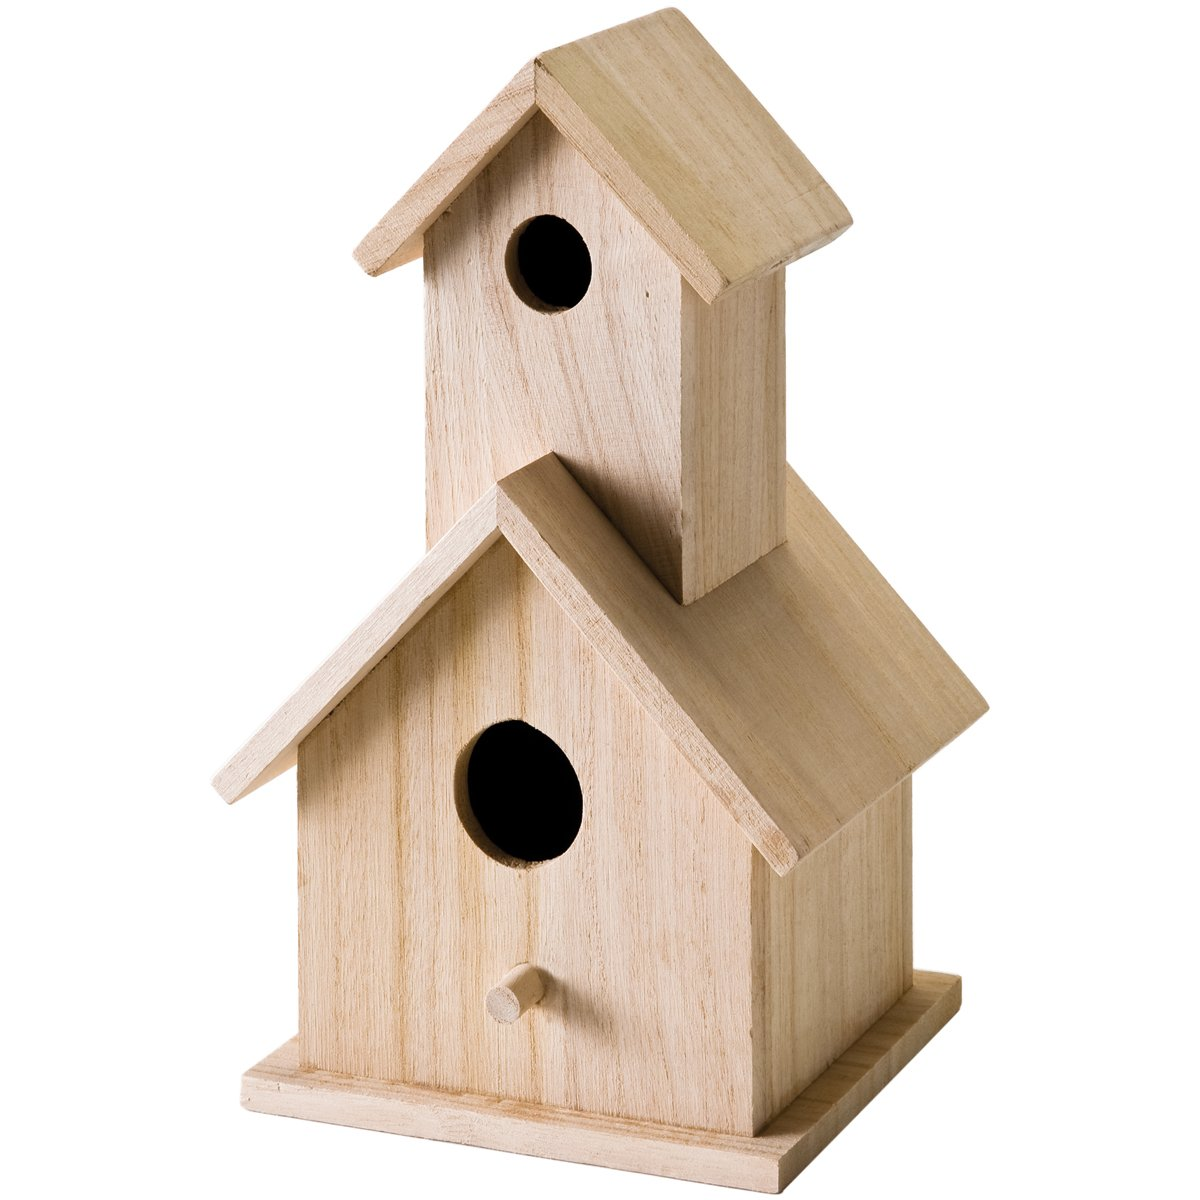 Plaid Wood Surface Crafting Birdhouse, 12741 Story Plaid Inc. 12741E